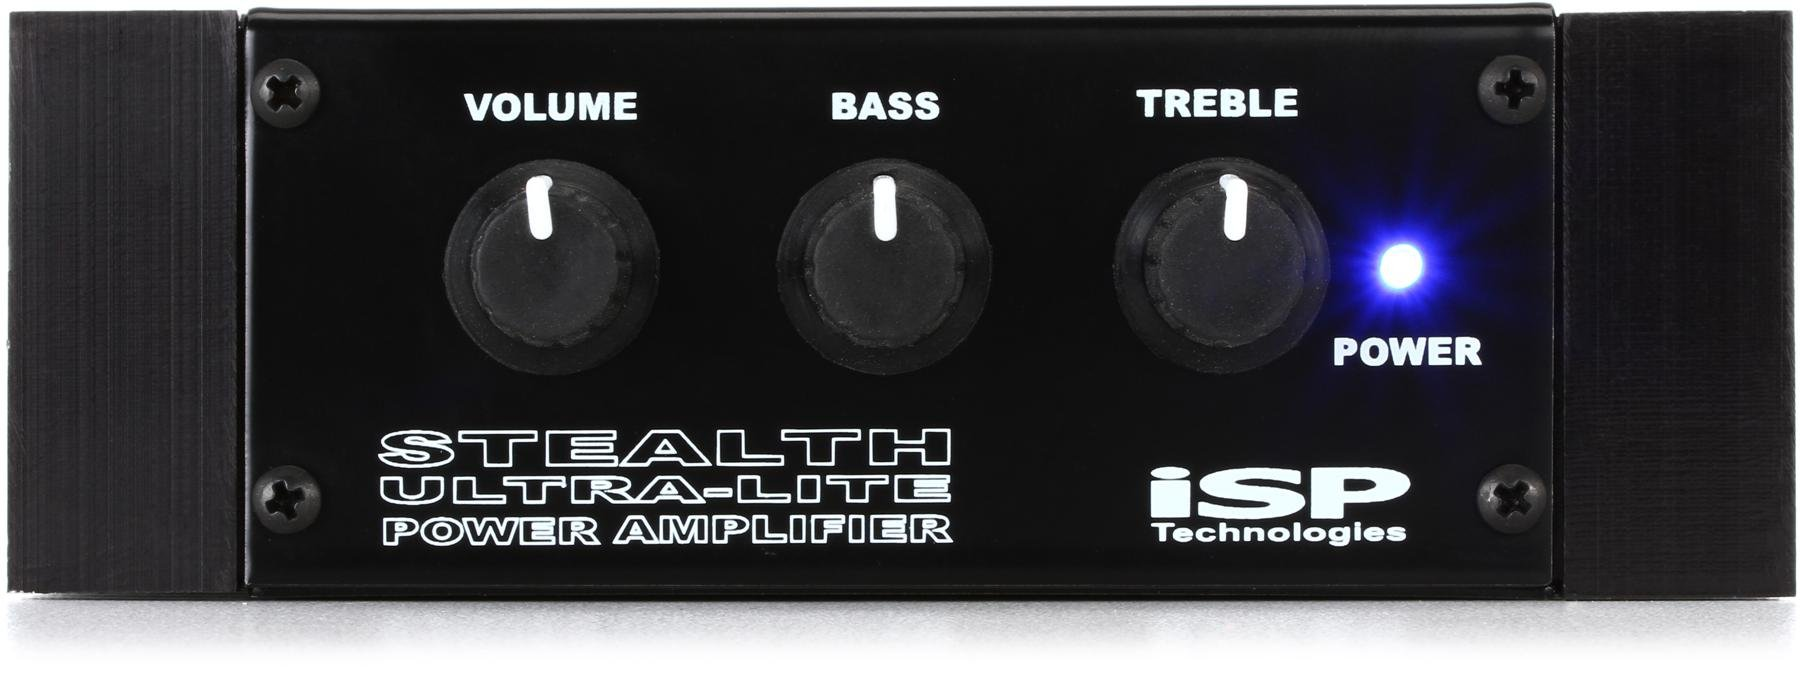 Isp Technologies Stealth 180 Watt Pedalboard Power Amp With Rack Audio Mid High Amplifier Portable Speaker Ultra Lite